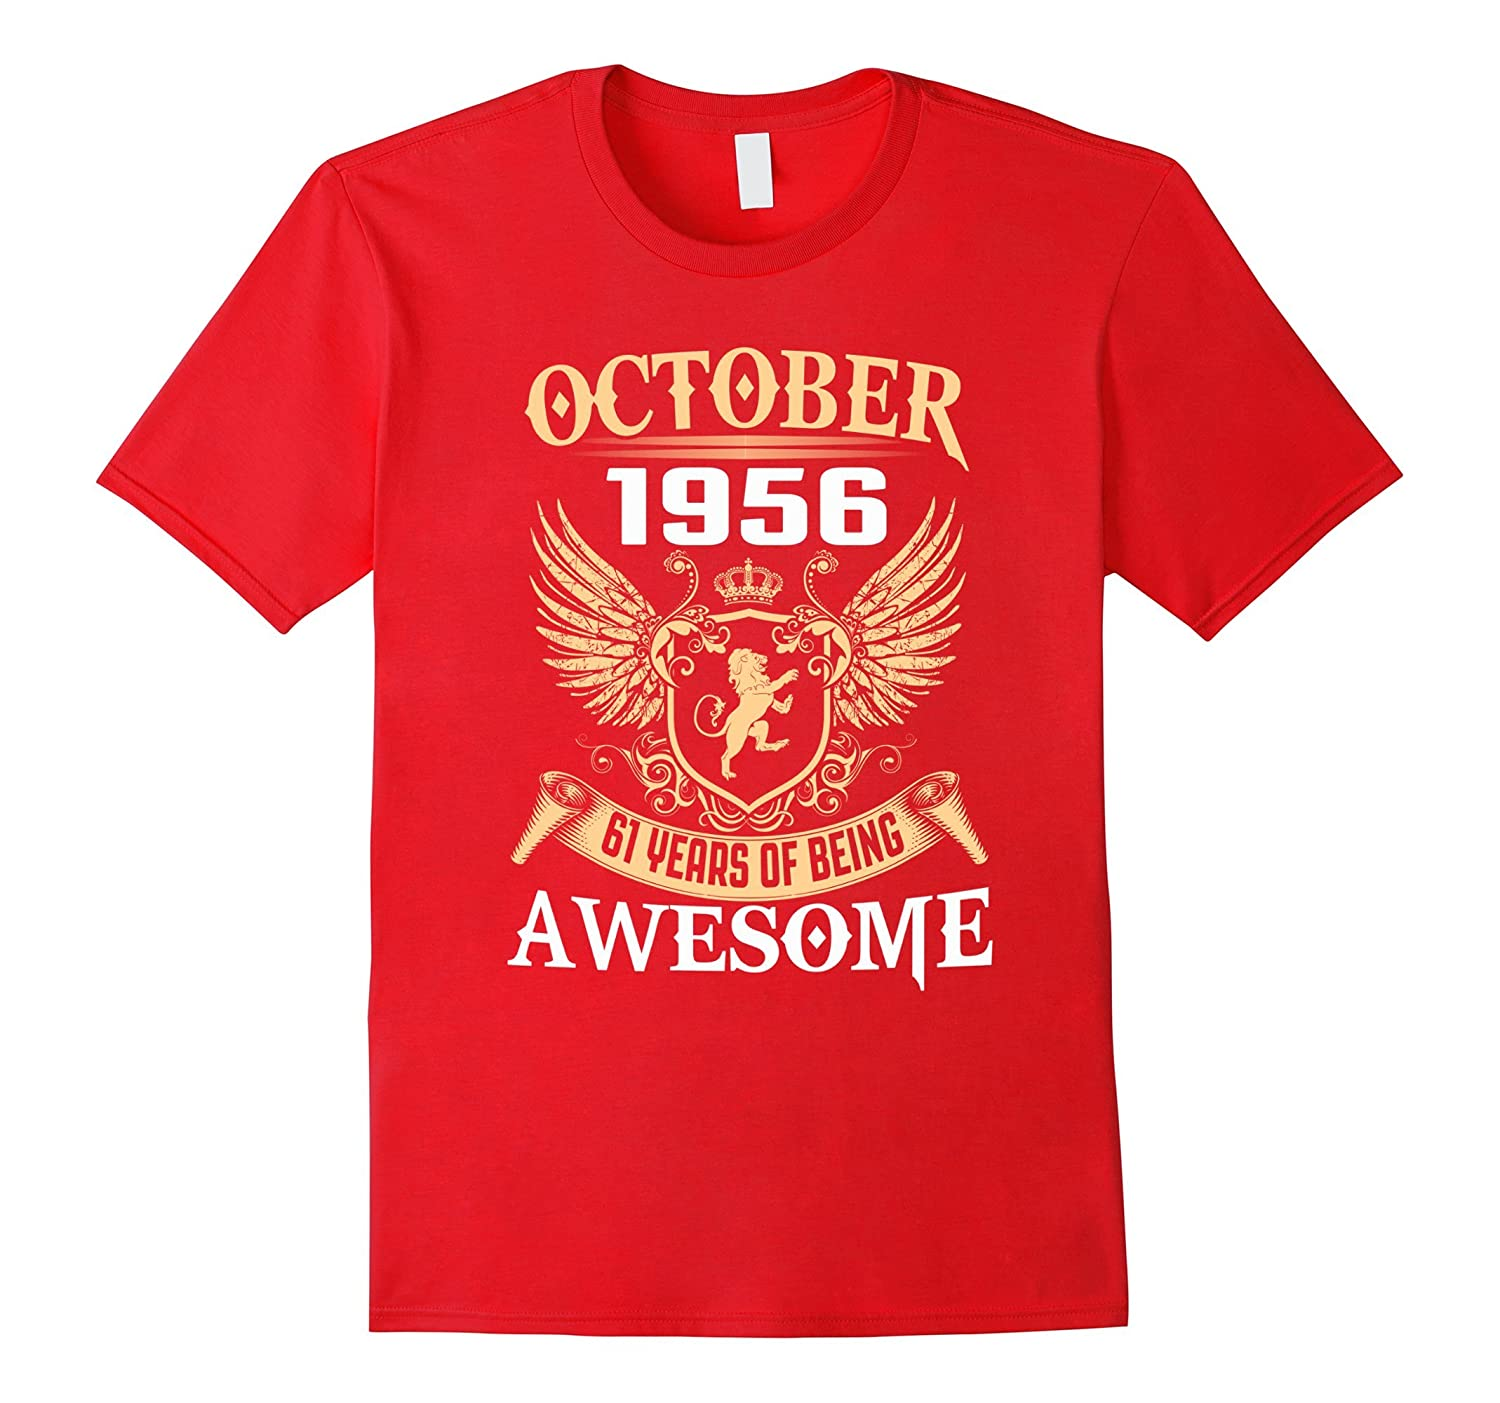 Born In October 1956 61 years of being awesome t shirt-FL